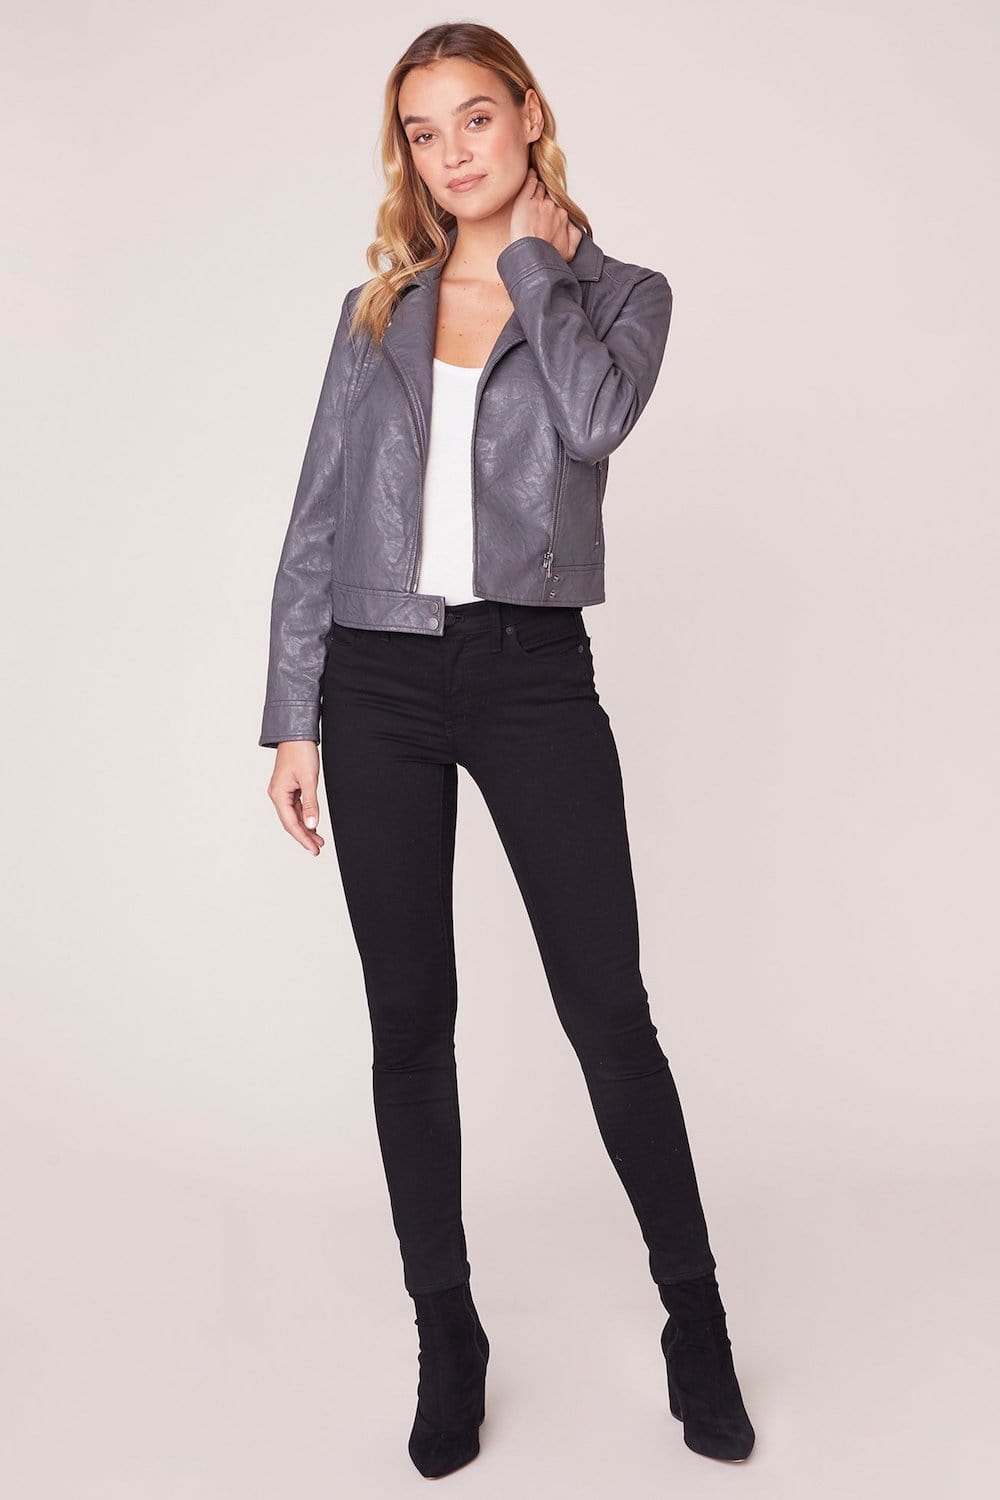 Jack By BB Dakota Take It For A Spin Vegan Leather Moto Jacket